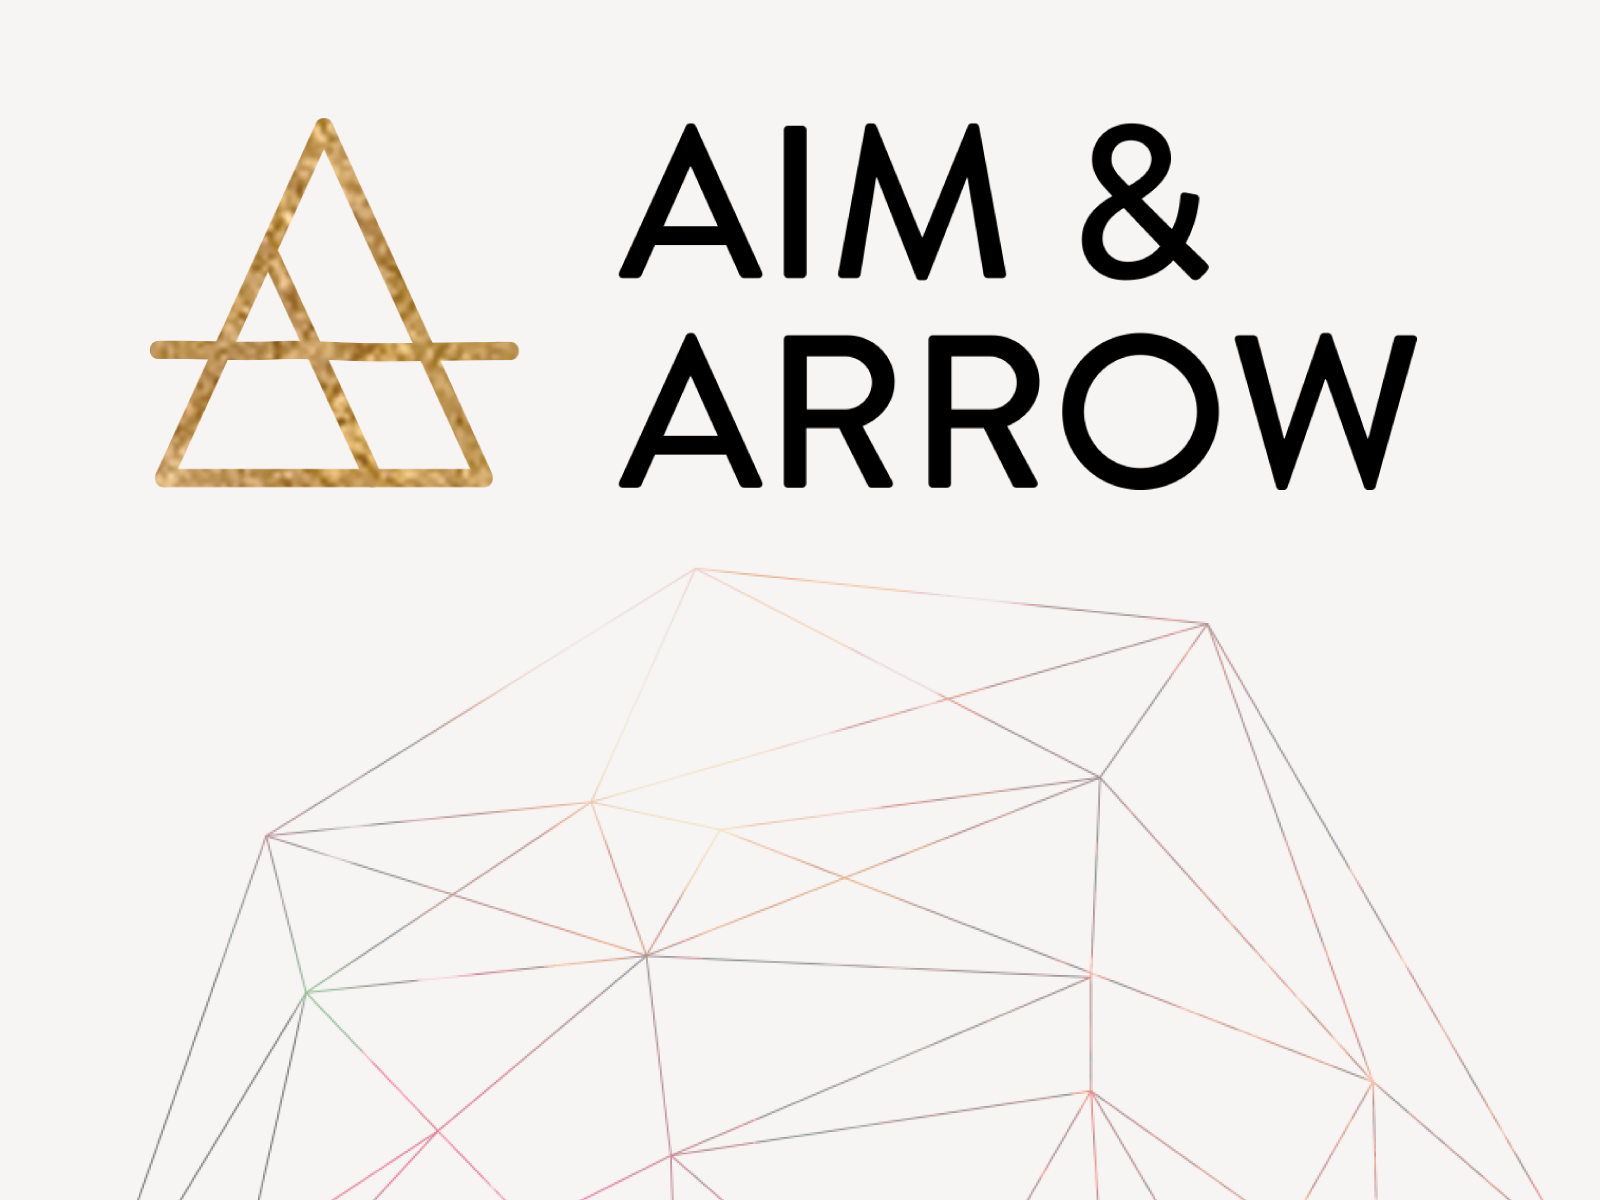 Aim & Arrow Group